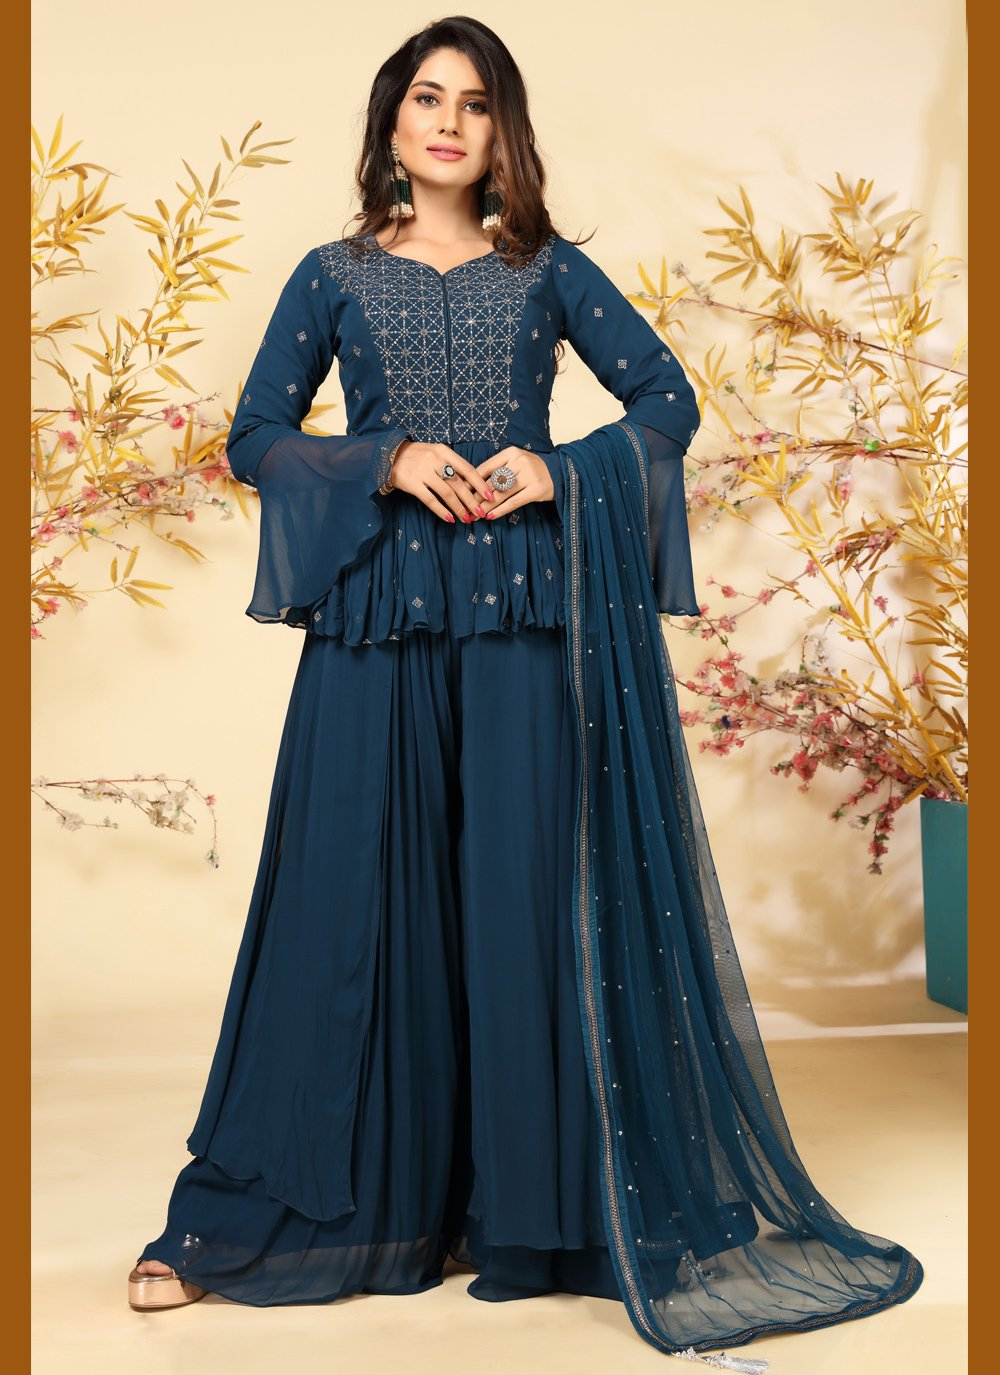 Embroidered Faux Georgette Readymade Suit in Teal